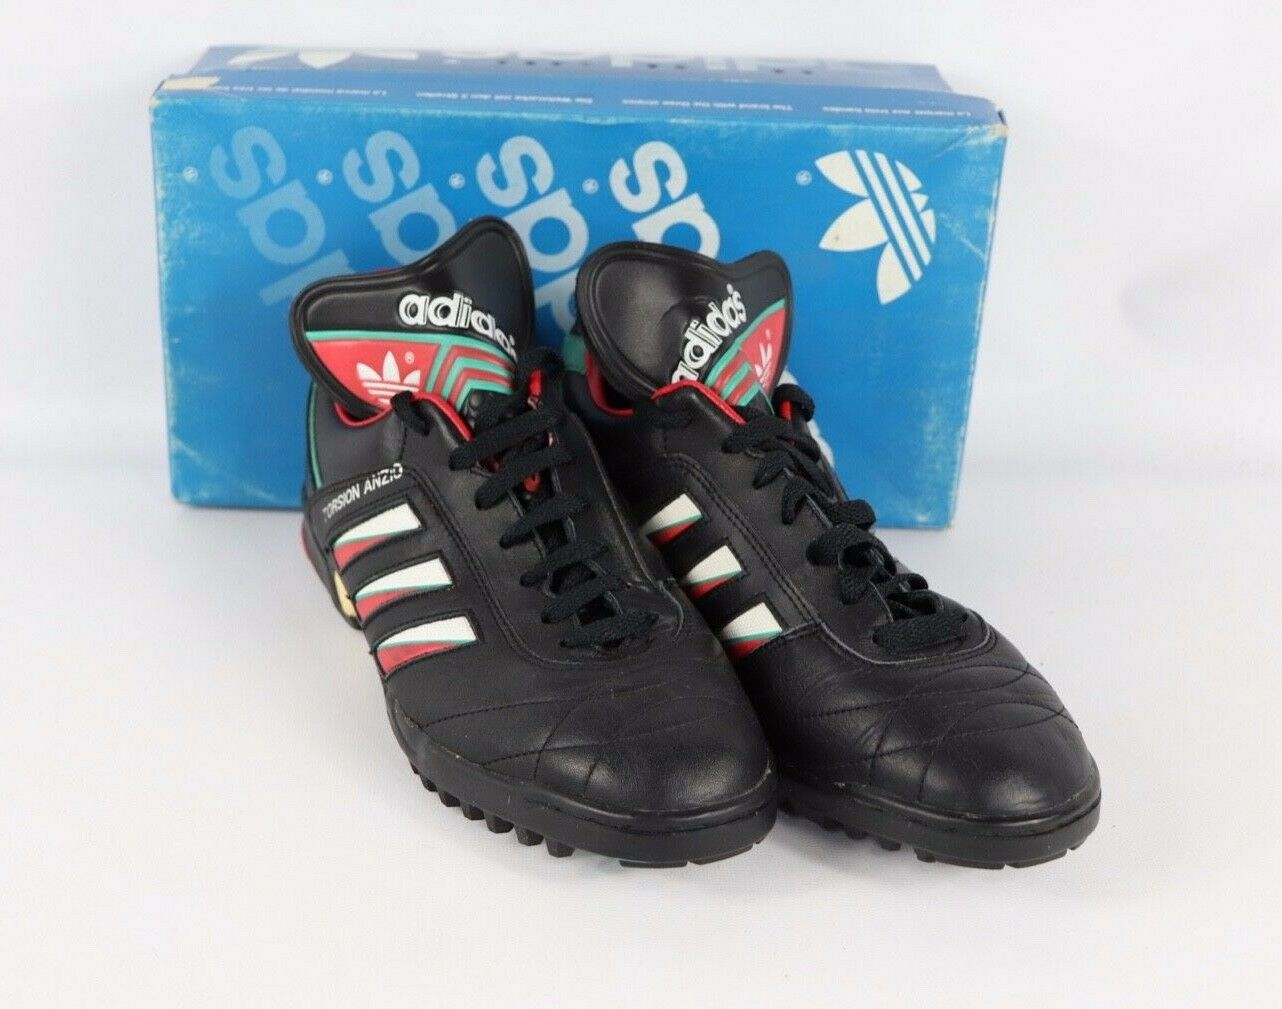 Vintage 80s Neuf Adidas Homme 9.5 Torsion Anzio Trefoil Sort Out Turf Chaussures